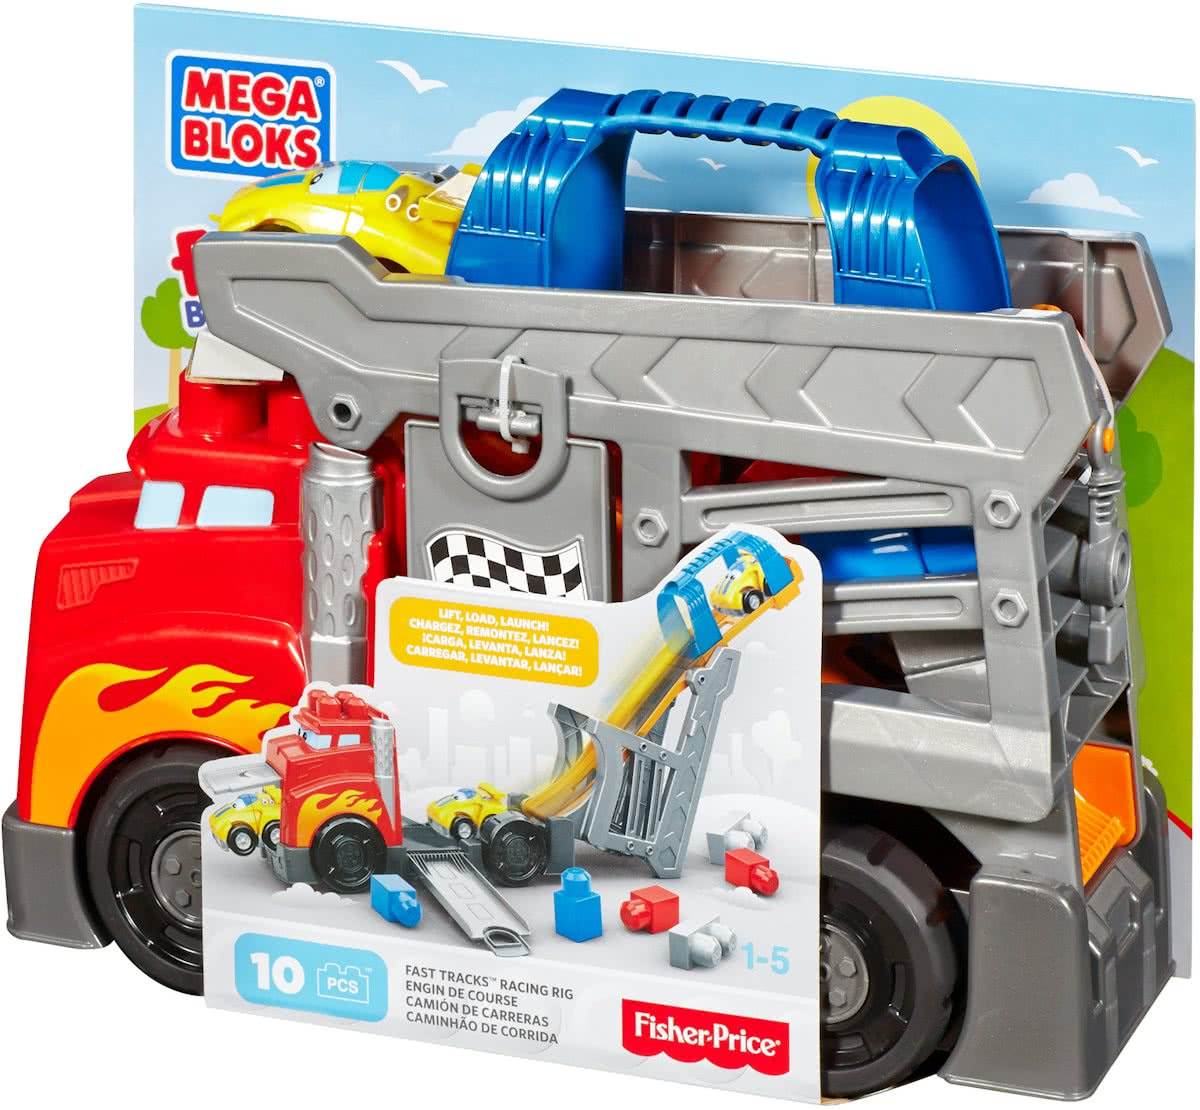 Mega Bloks -First Builders Smash n Crash Rig - Constructiespeelgoed